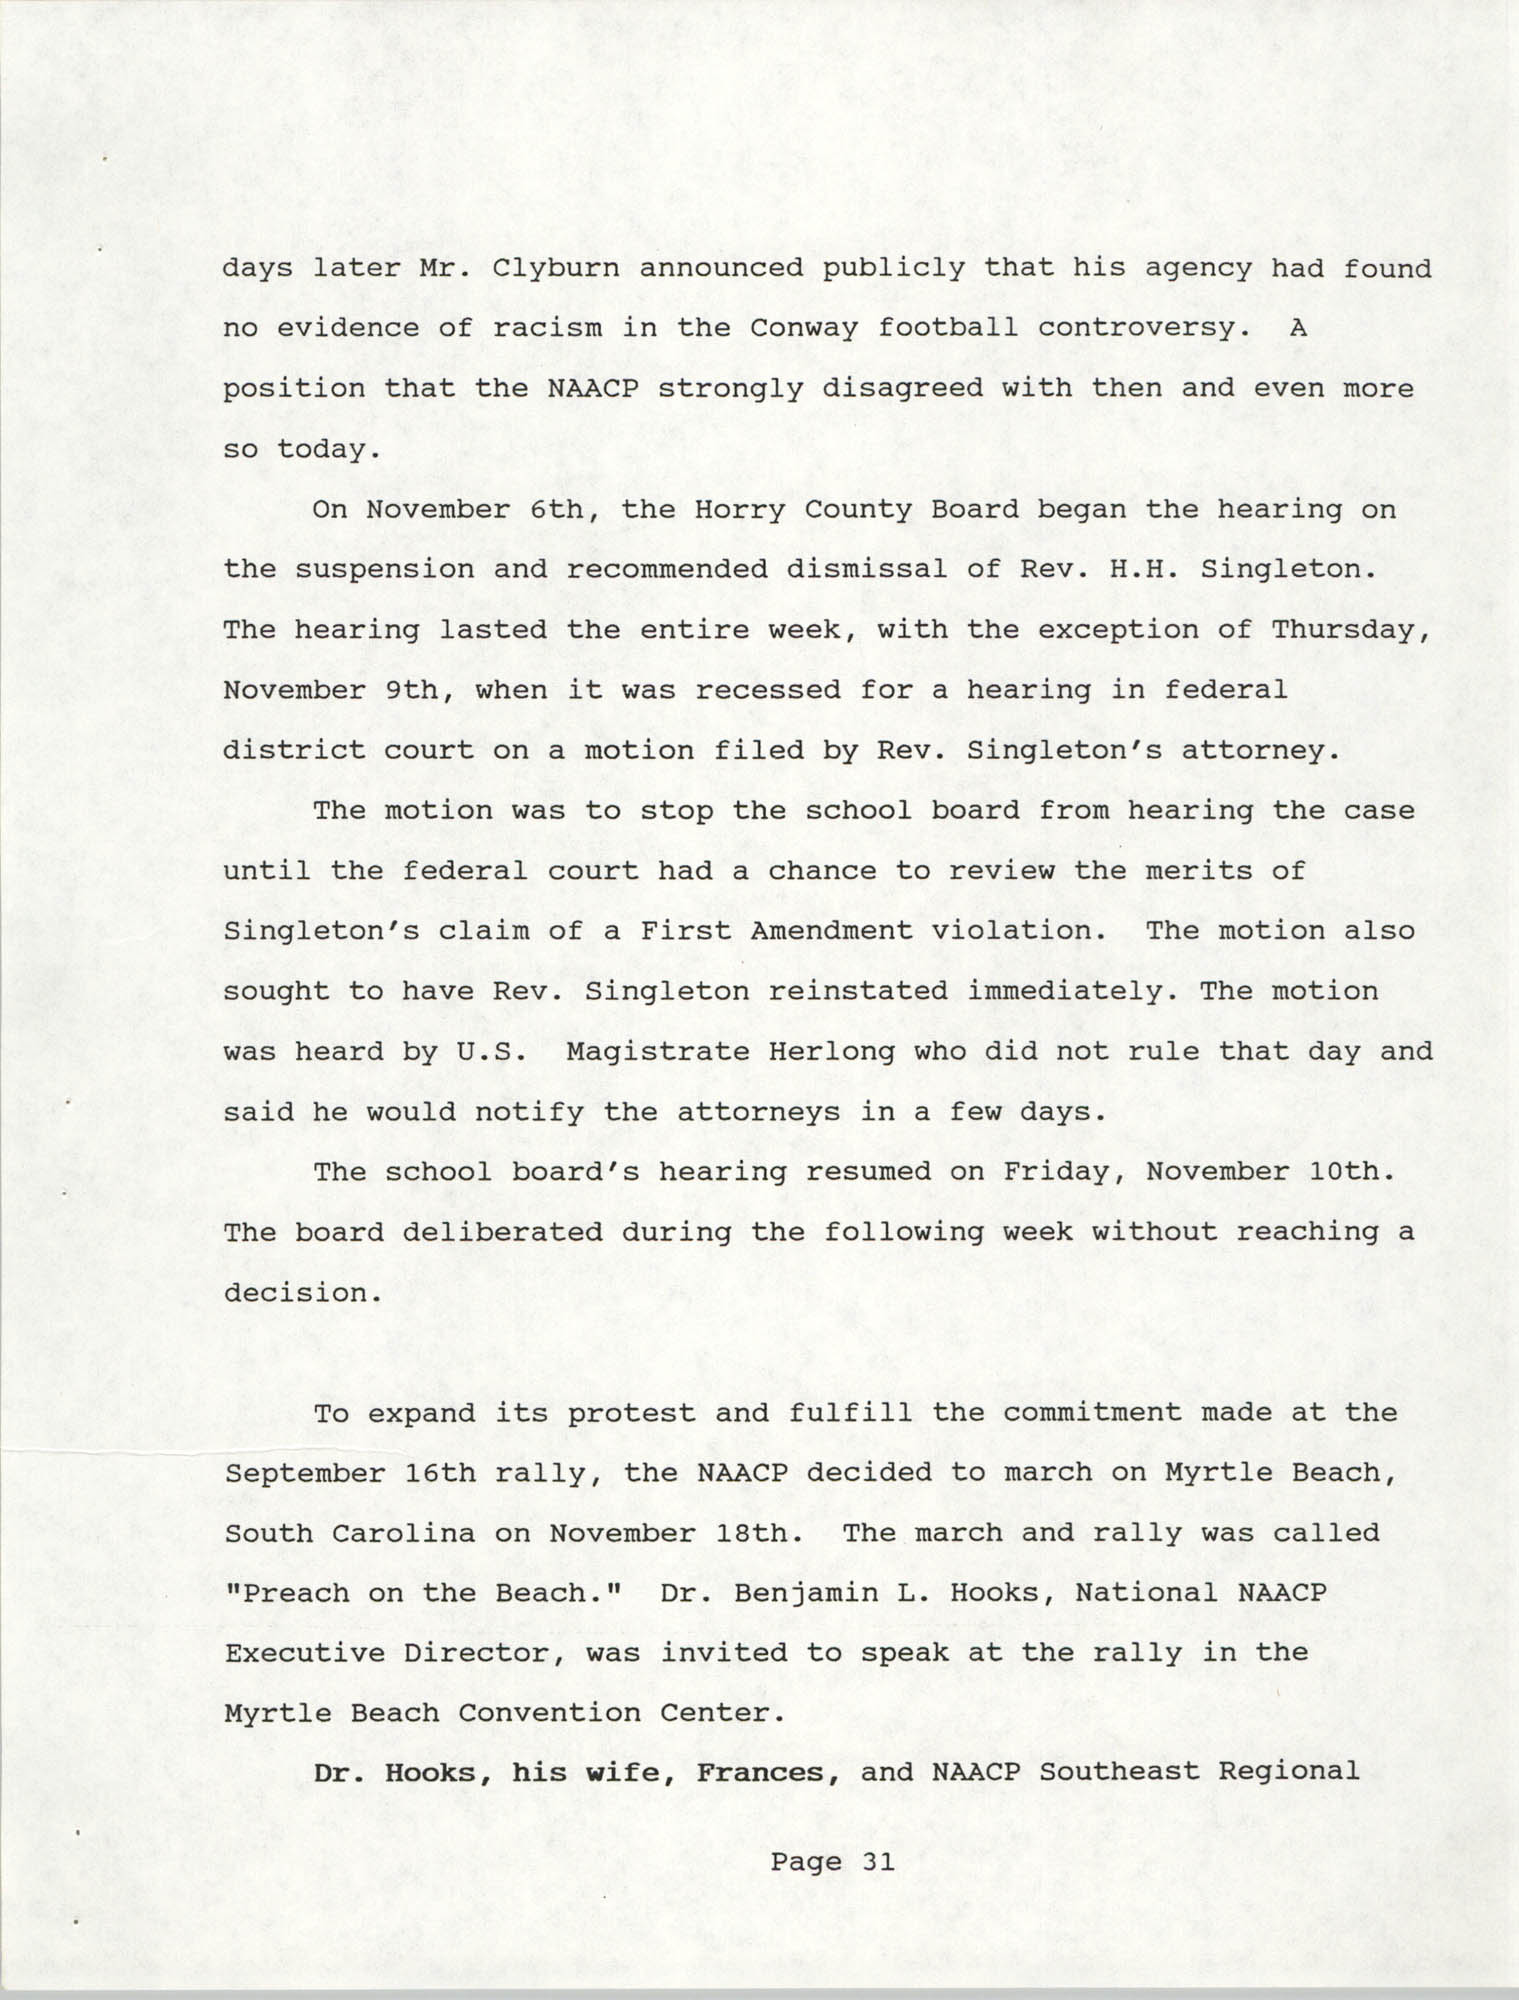 South Carolina Conference of Branches of the NAACP, 1990 Annual Report, Part Two, Page 31